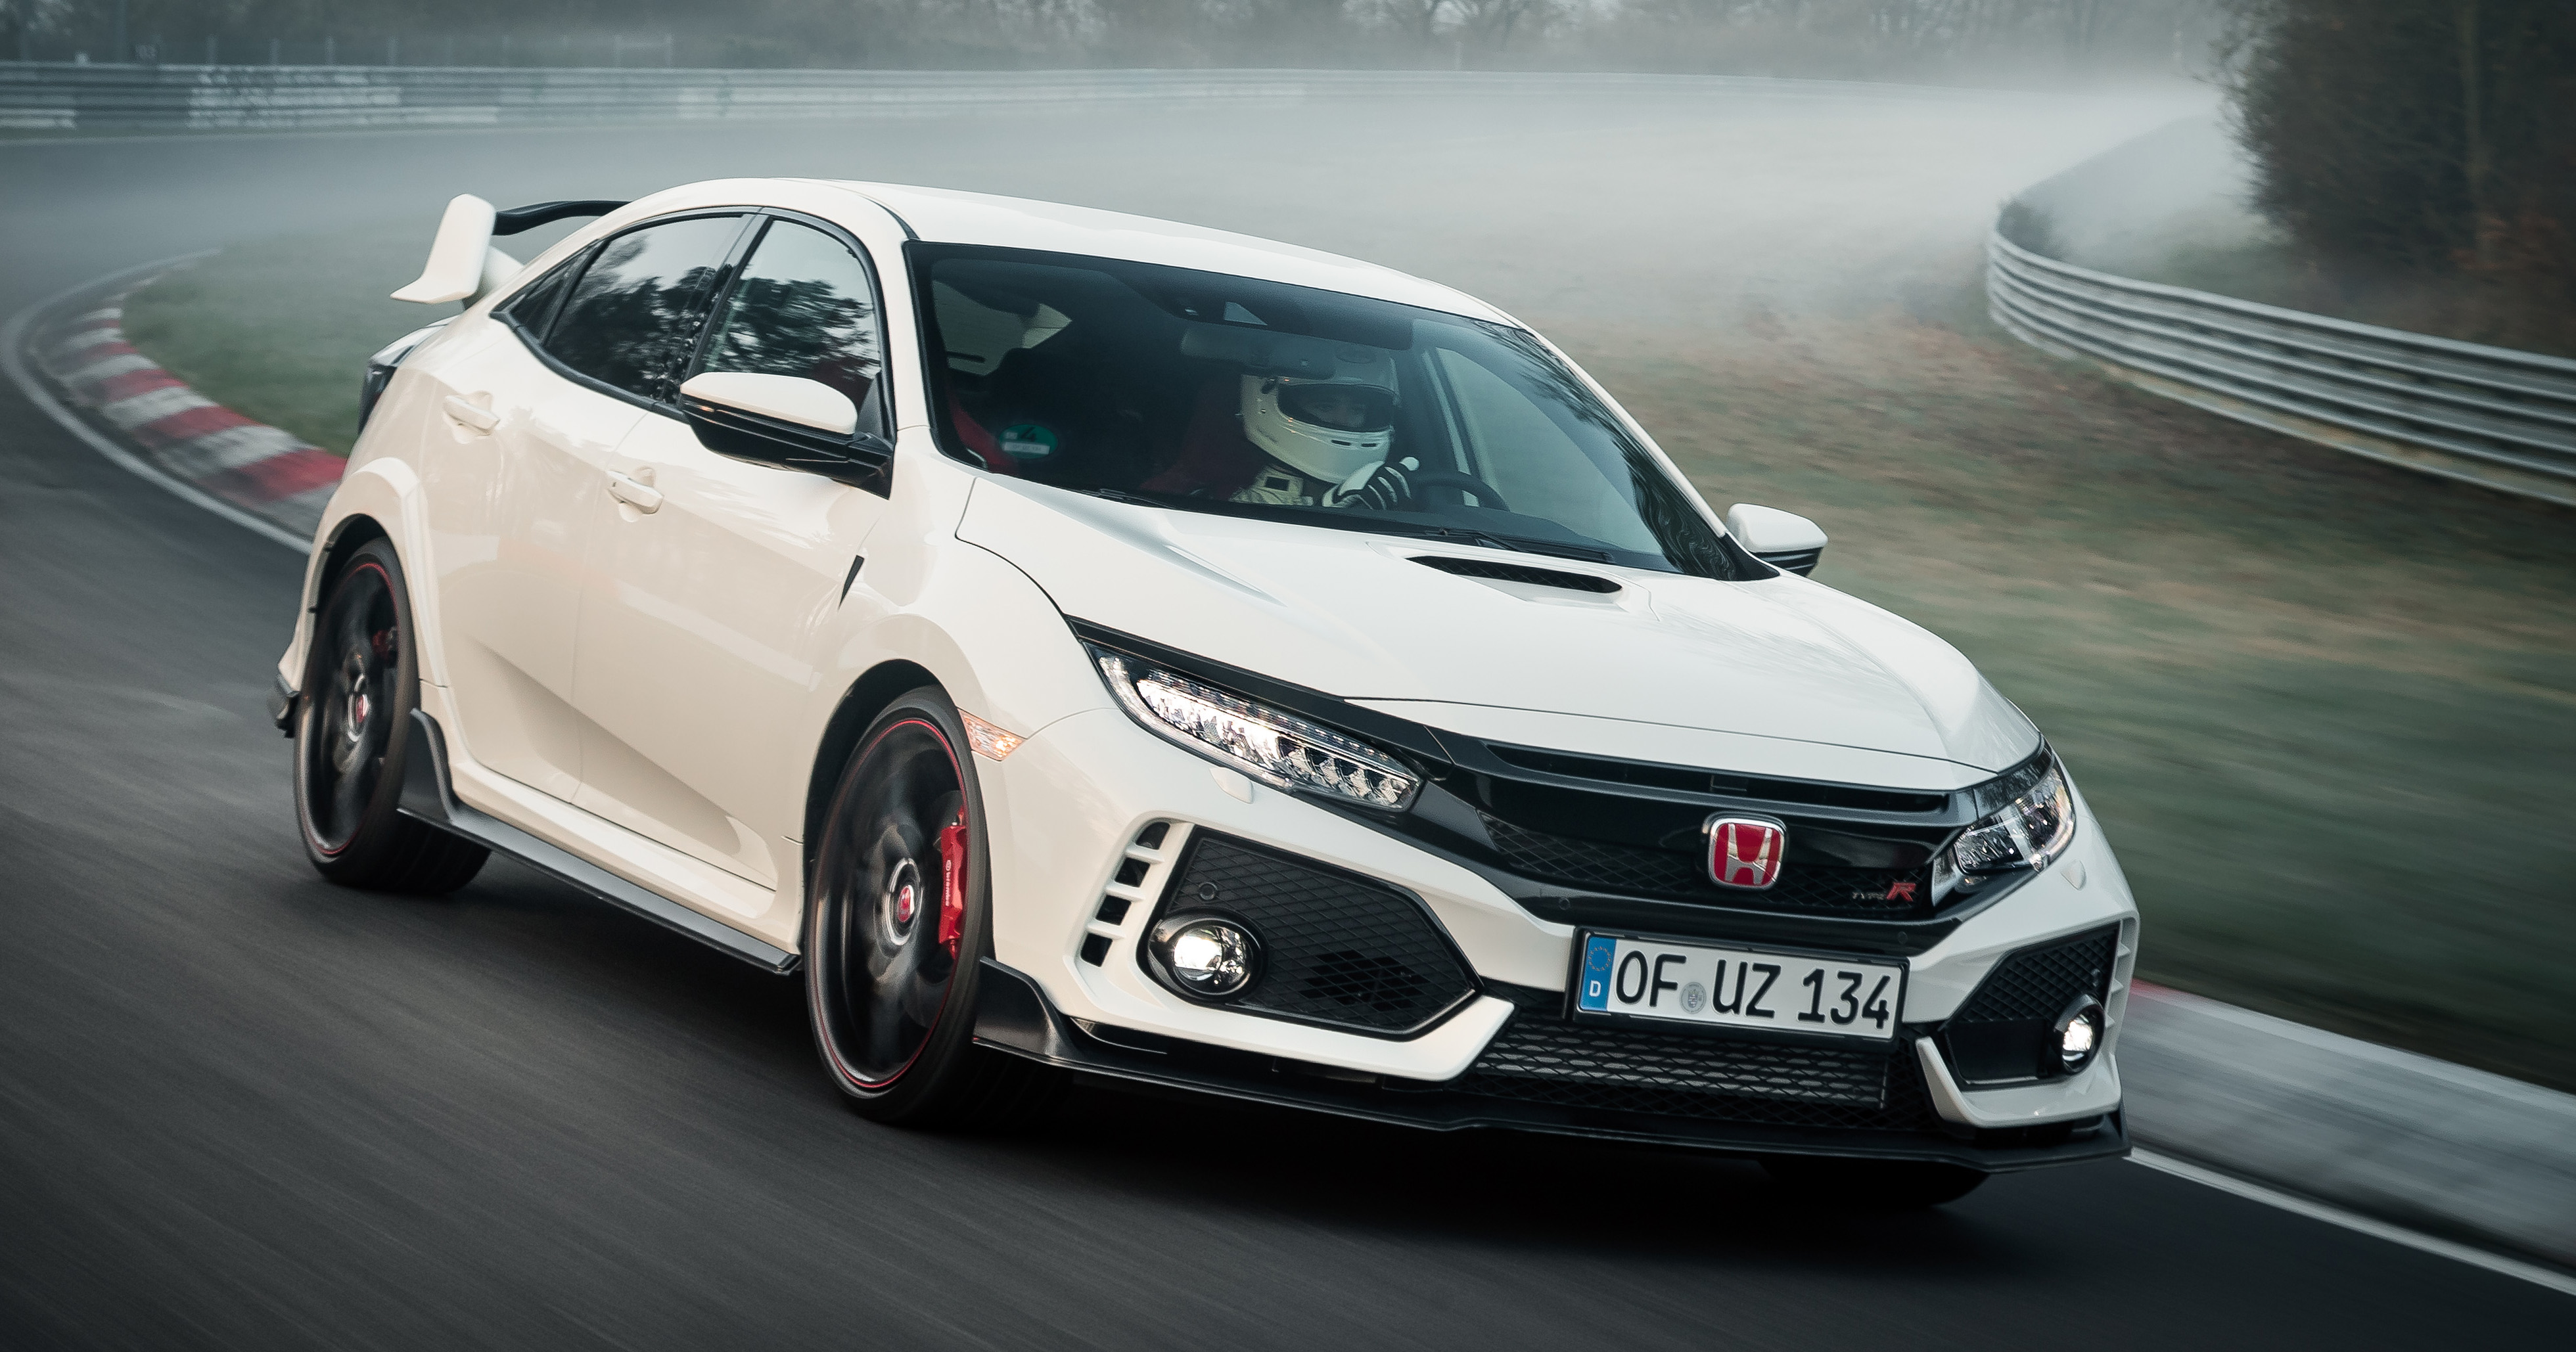 Honda Civic Type R Launched In The UK From RM174k